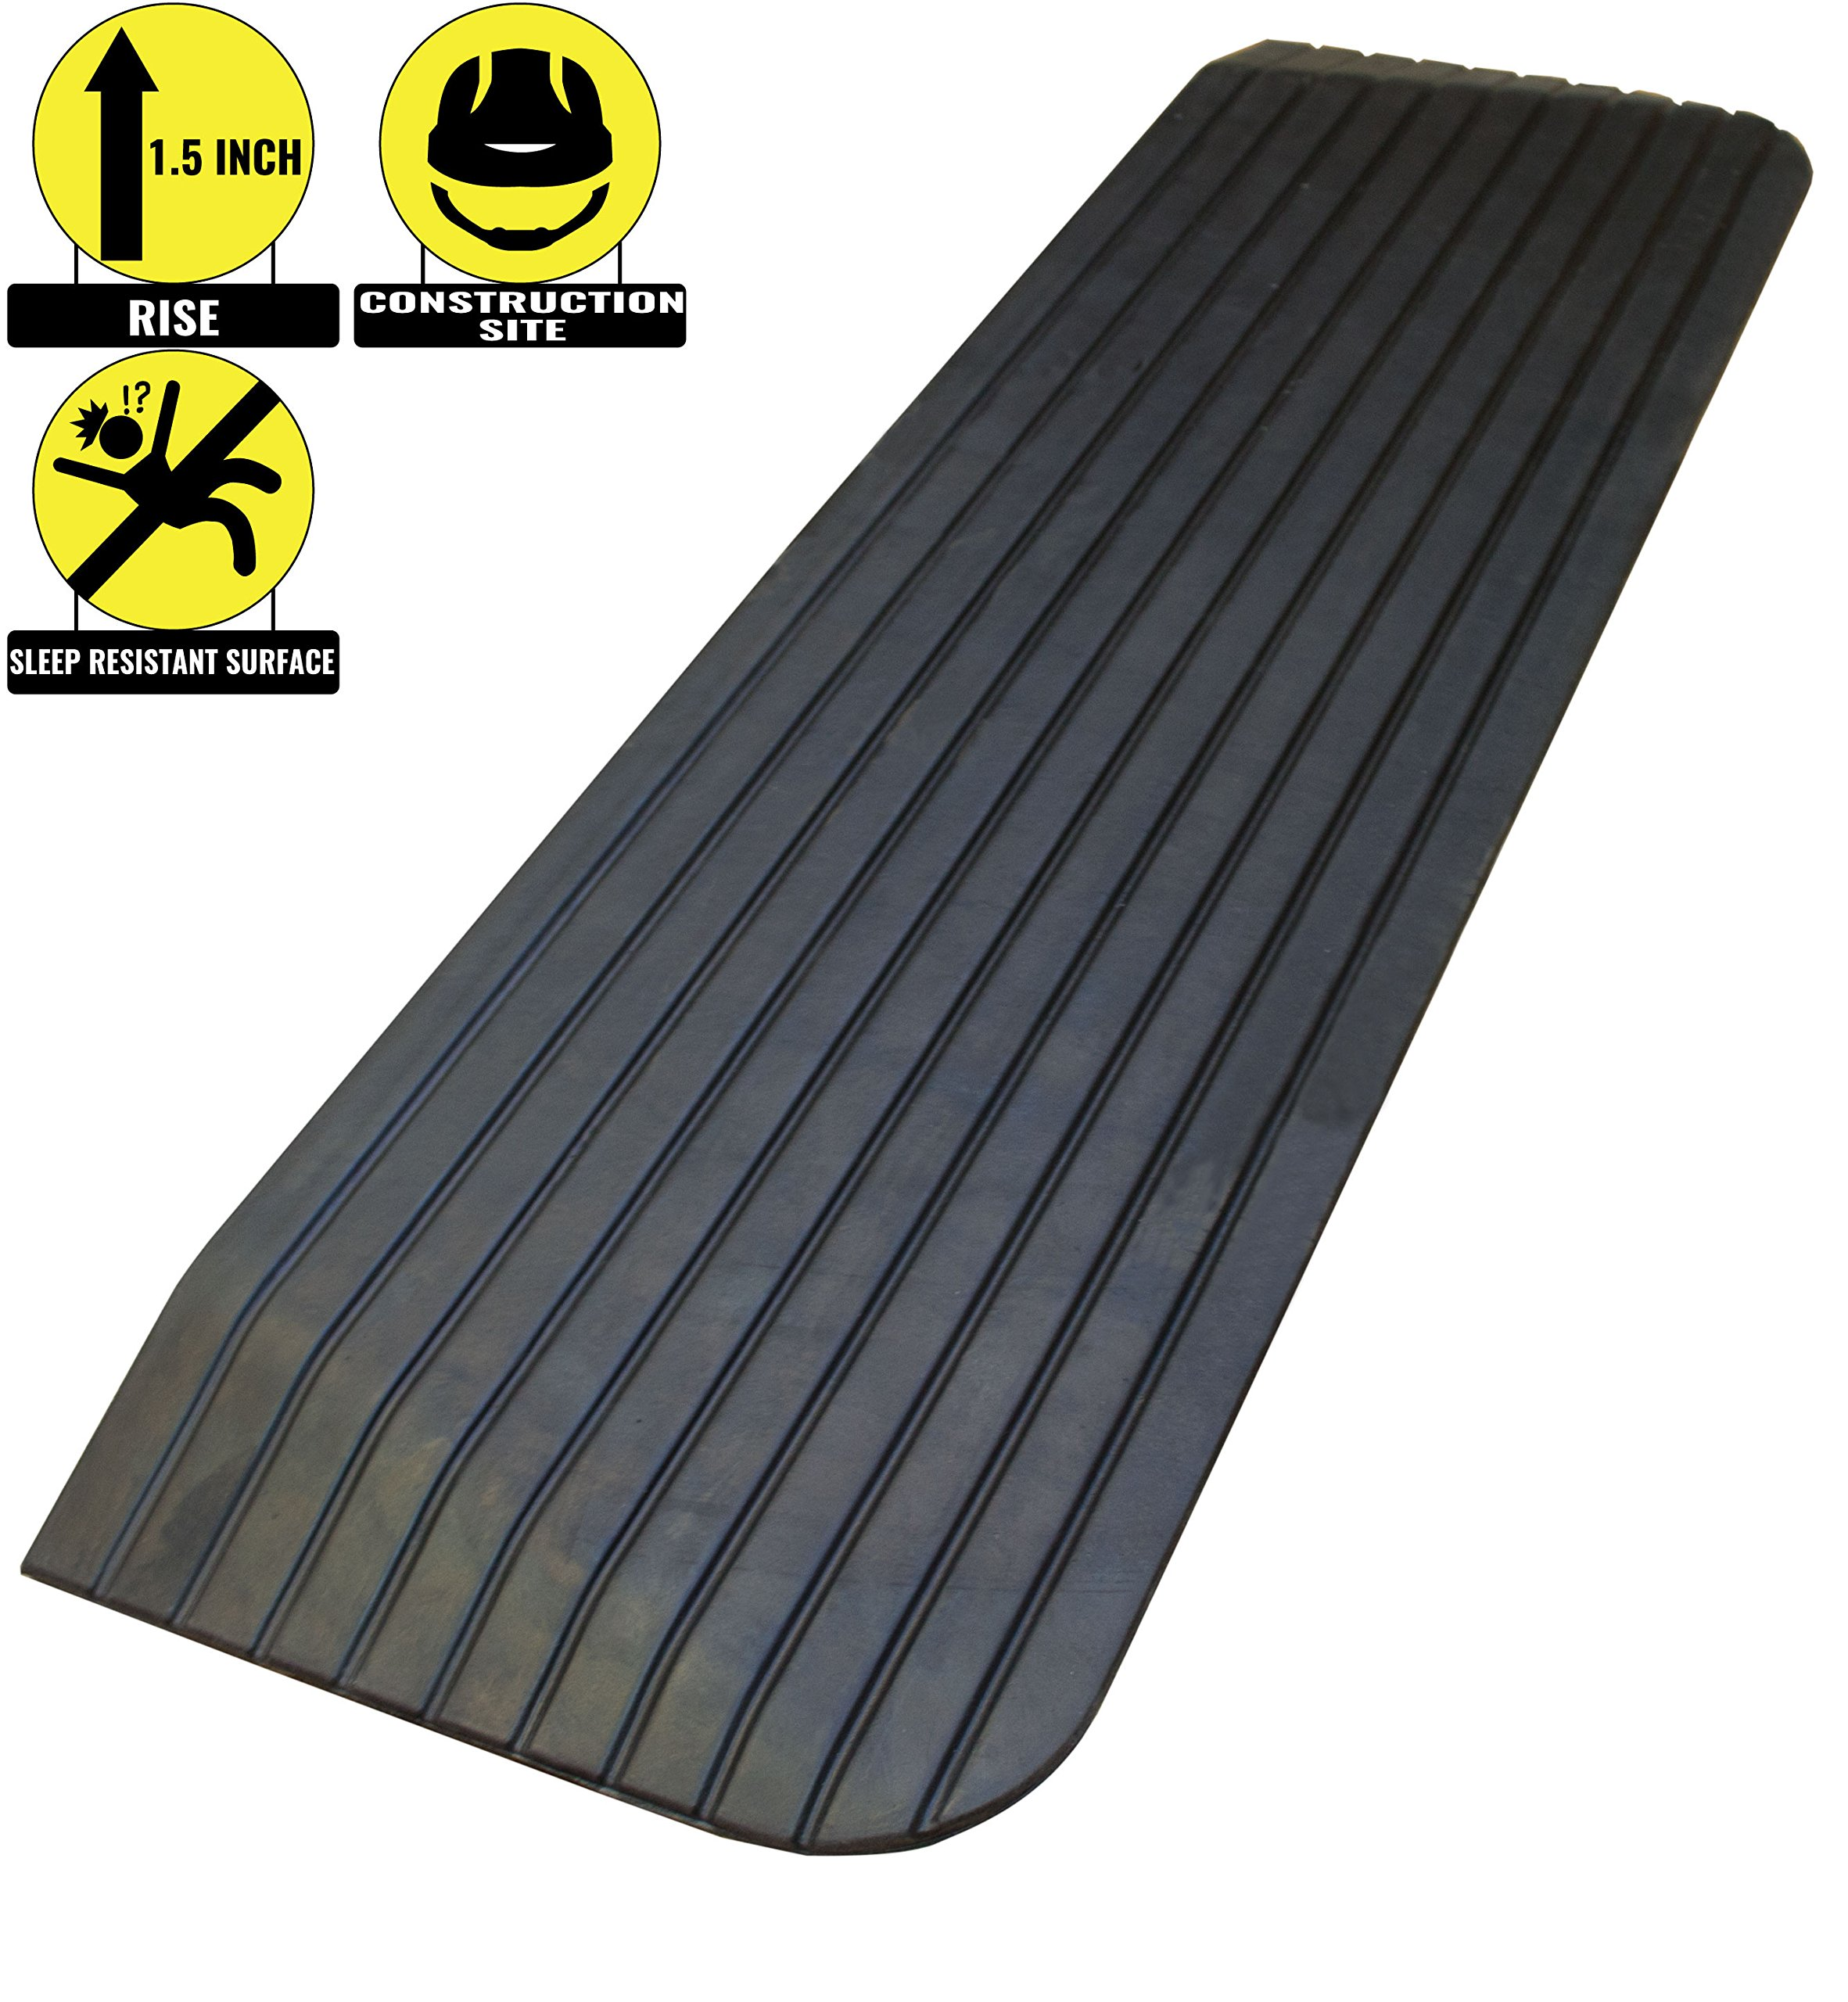 RK Safety RK-RTR02 1.5'' Rise Solid Rubber Power Wheelchair Scooter Threshold Ramp (1 Pc)